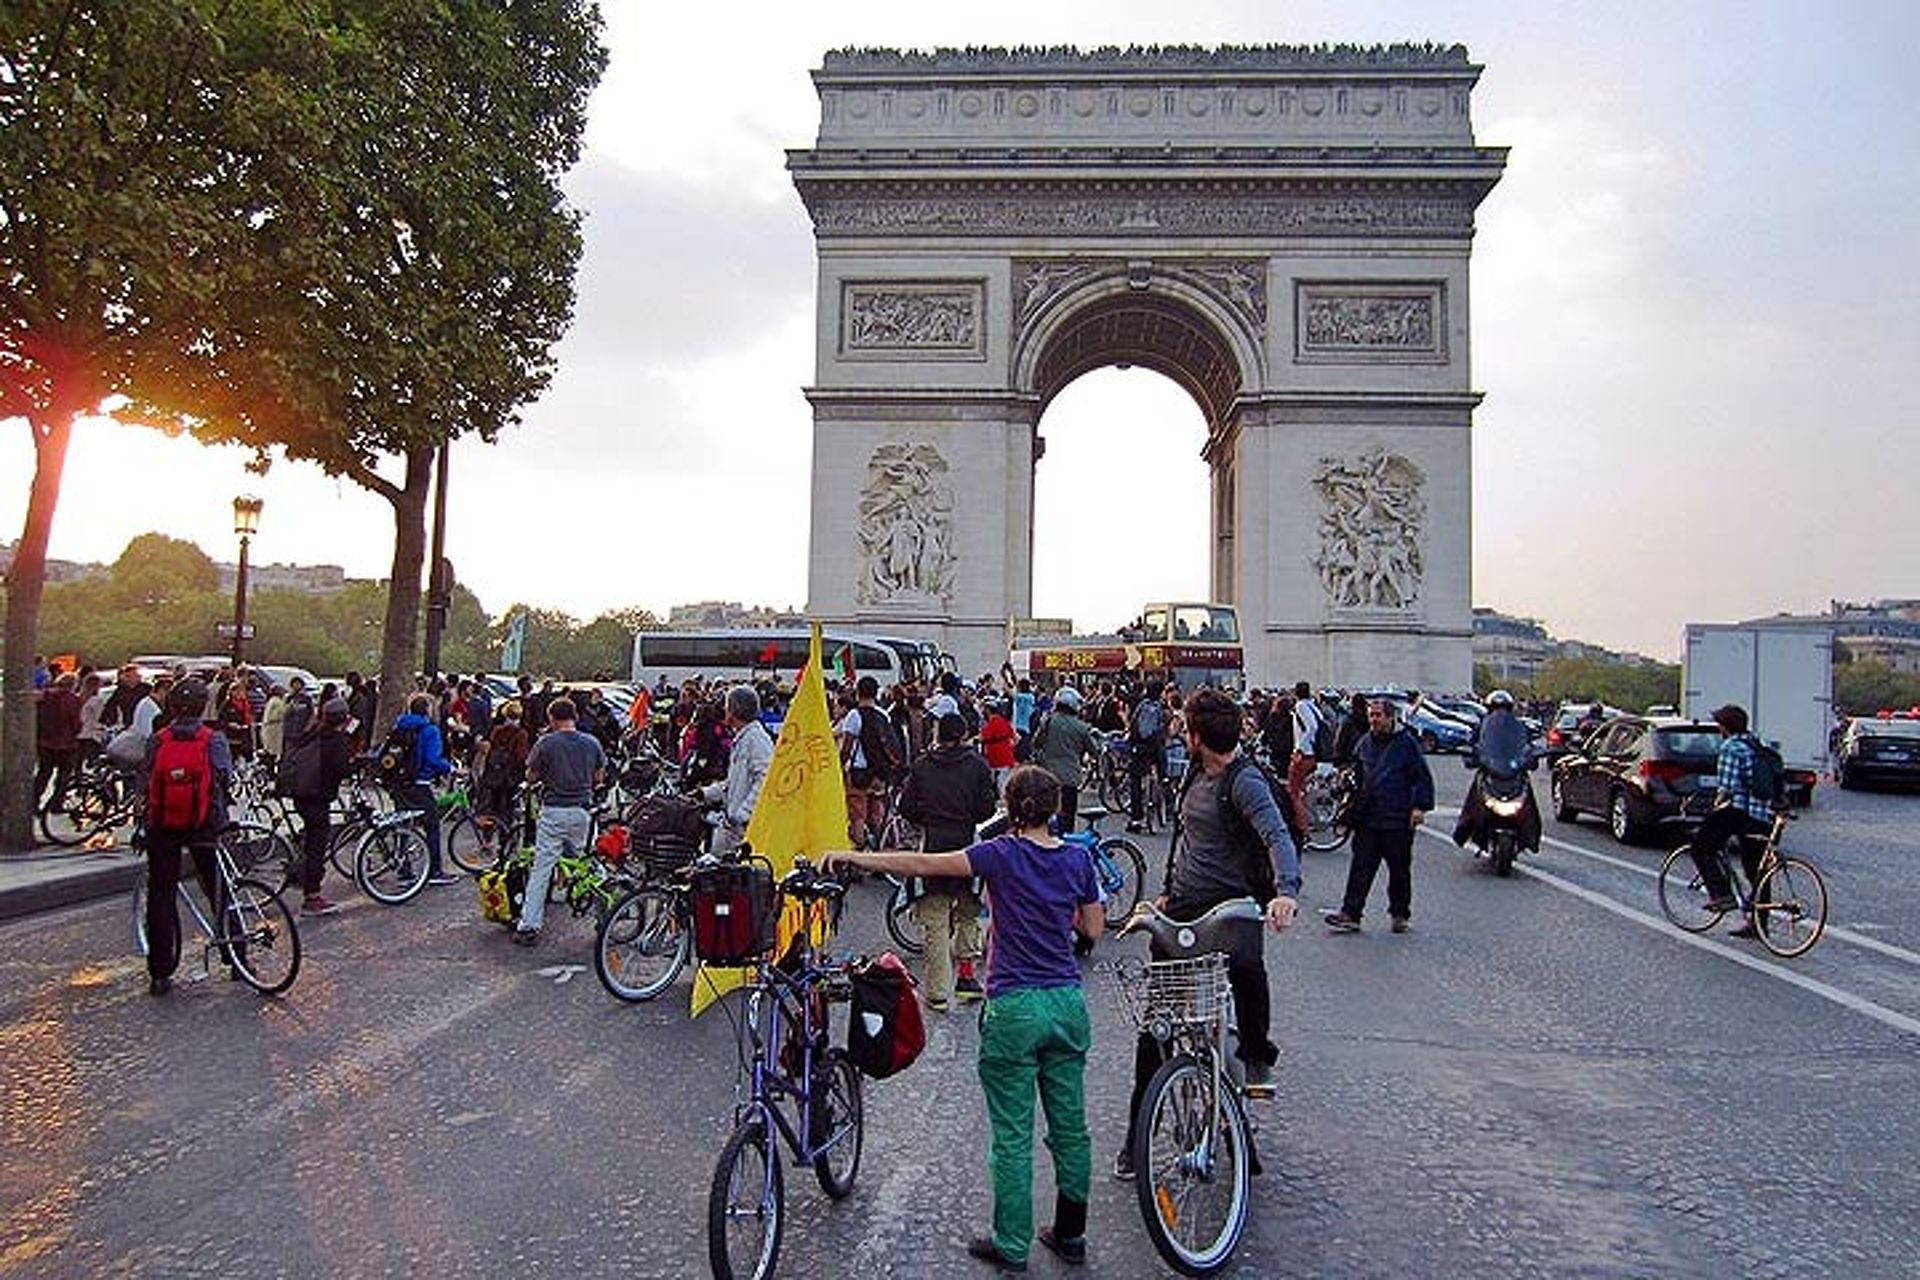 Paris Will Ban Cars for a Day in September